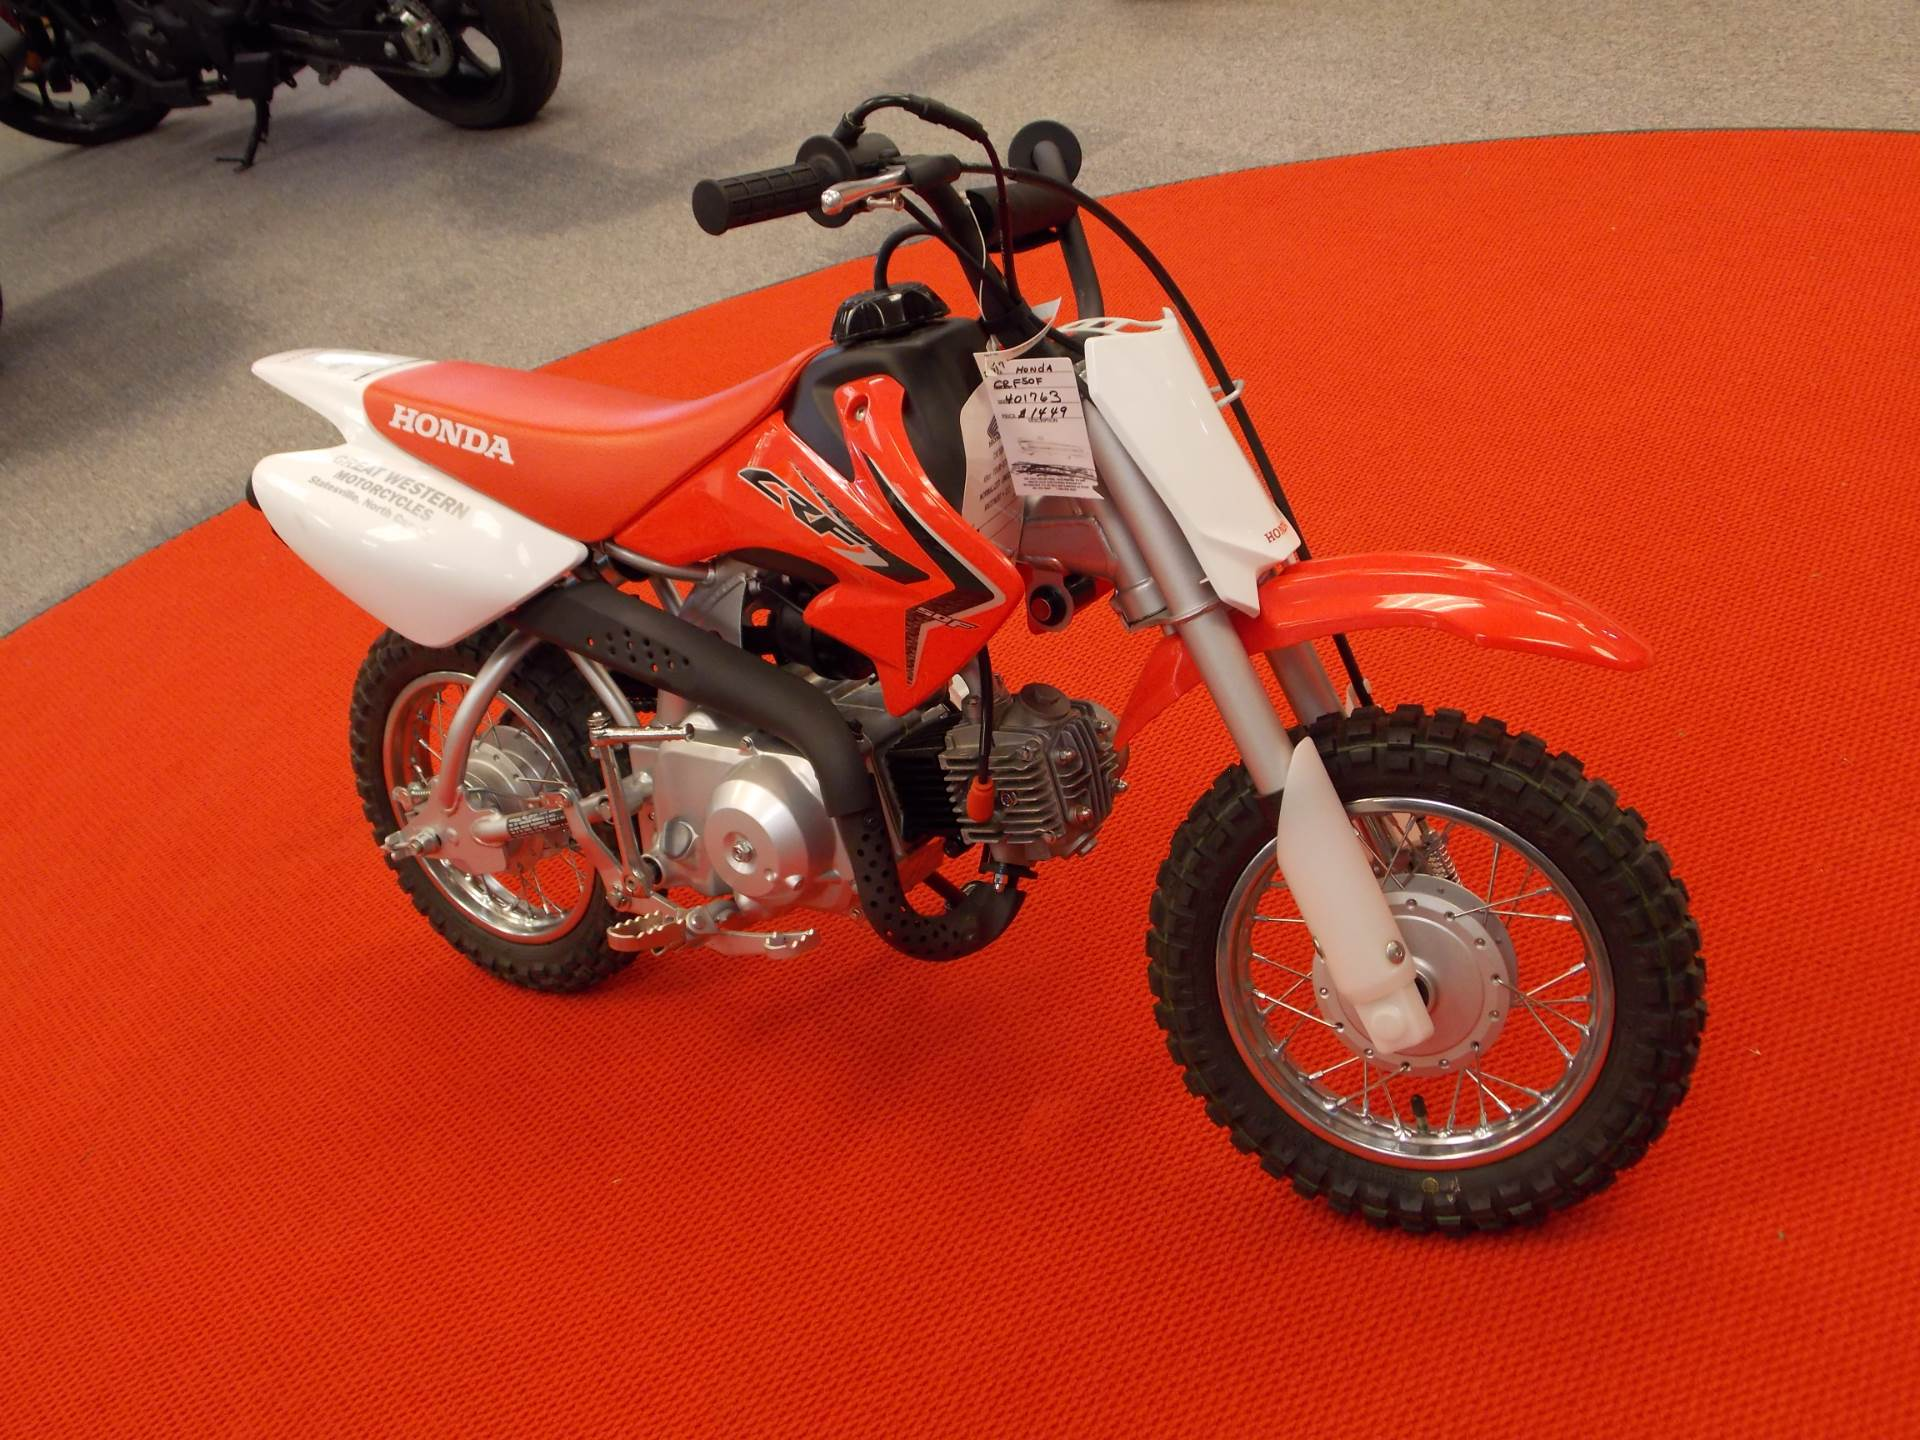 new 2017 honda crf50f motorcycles in statesville, nc | stock